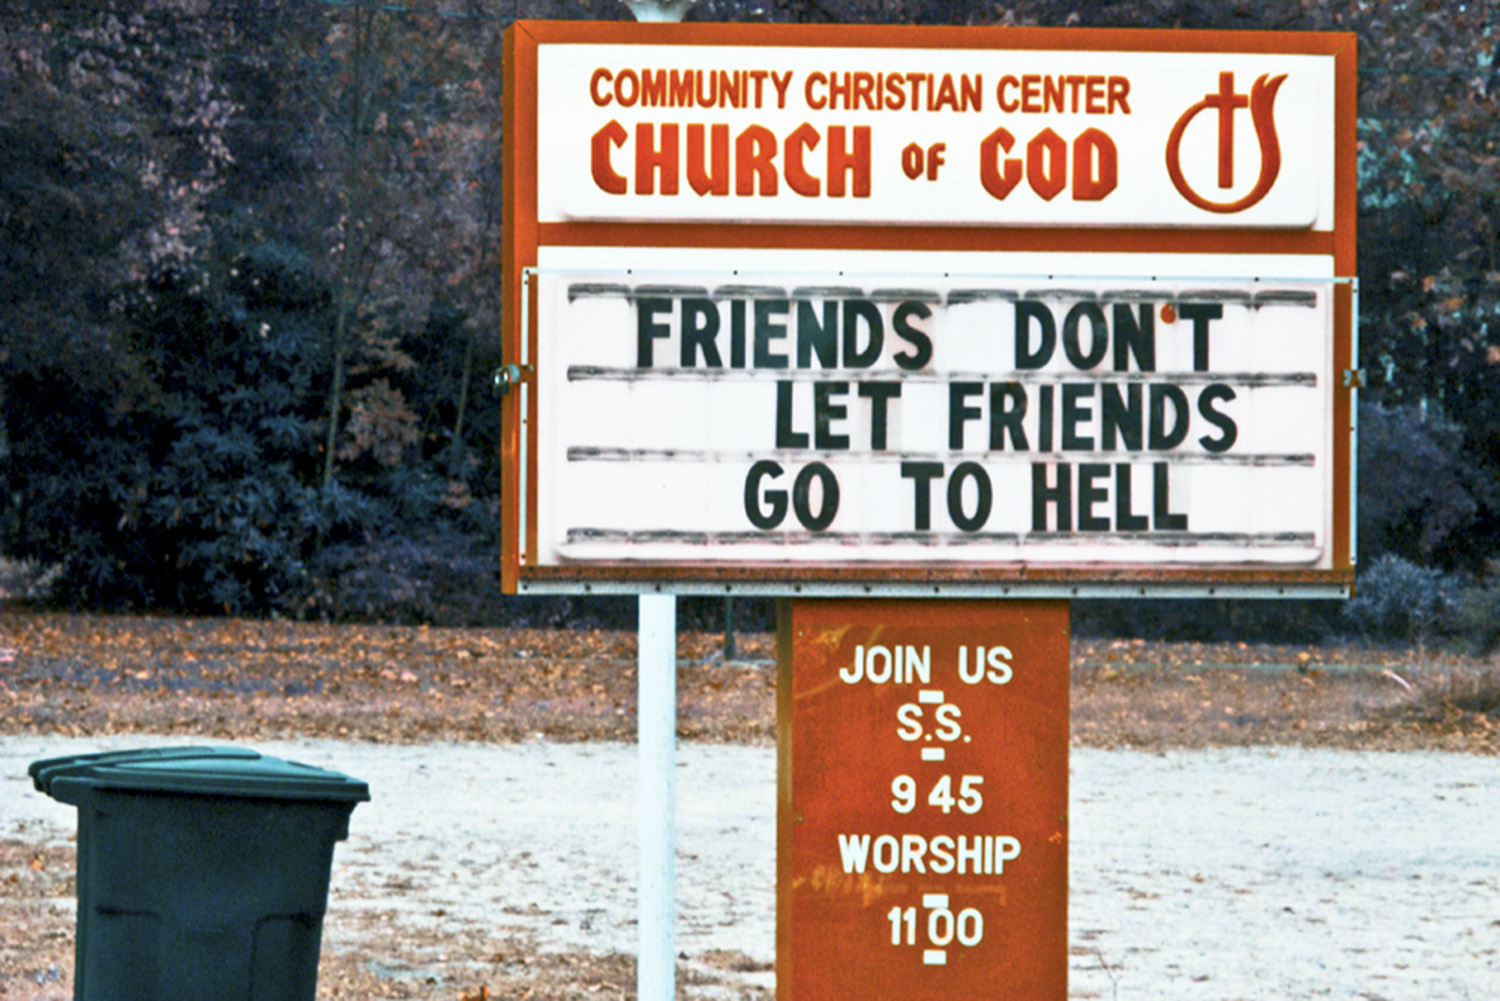 Friend's Don't Let Friends Go to Hell